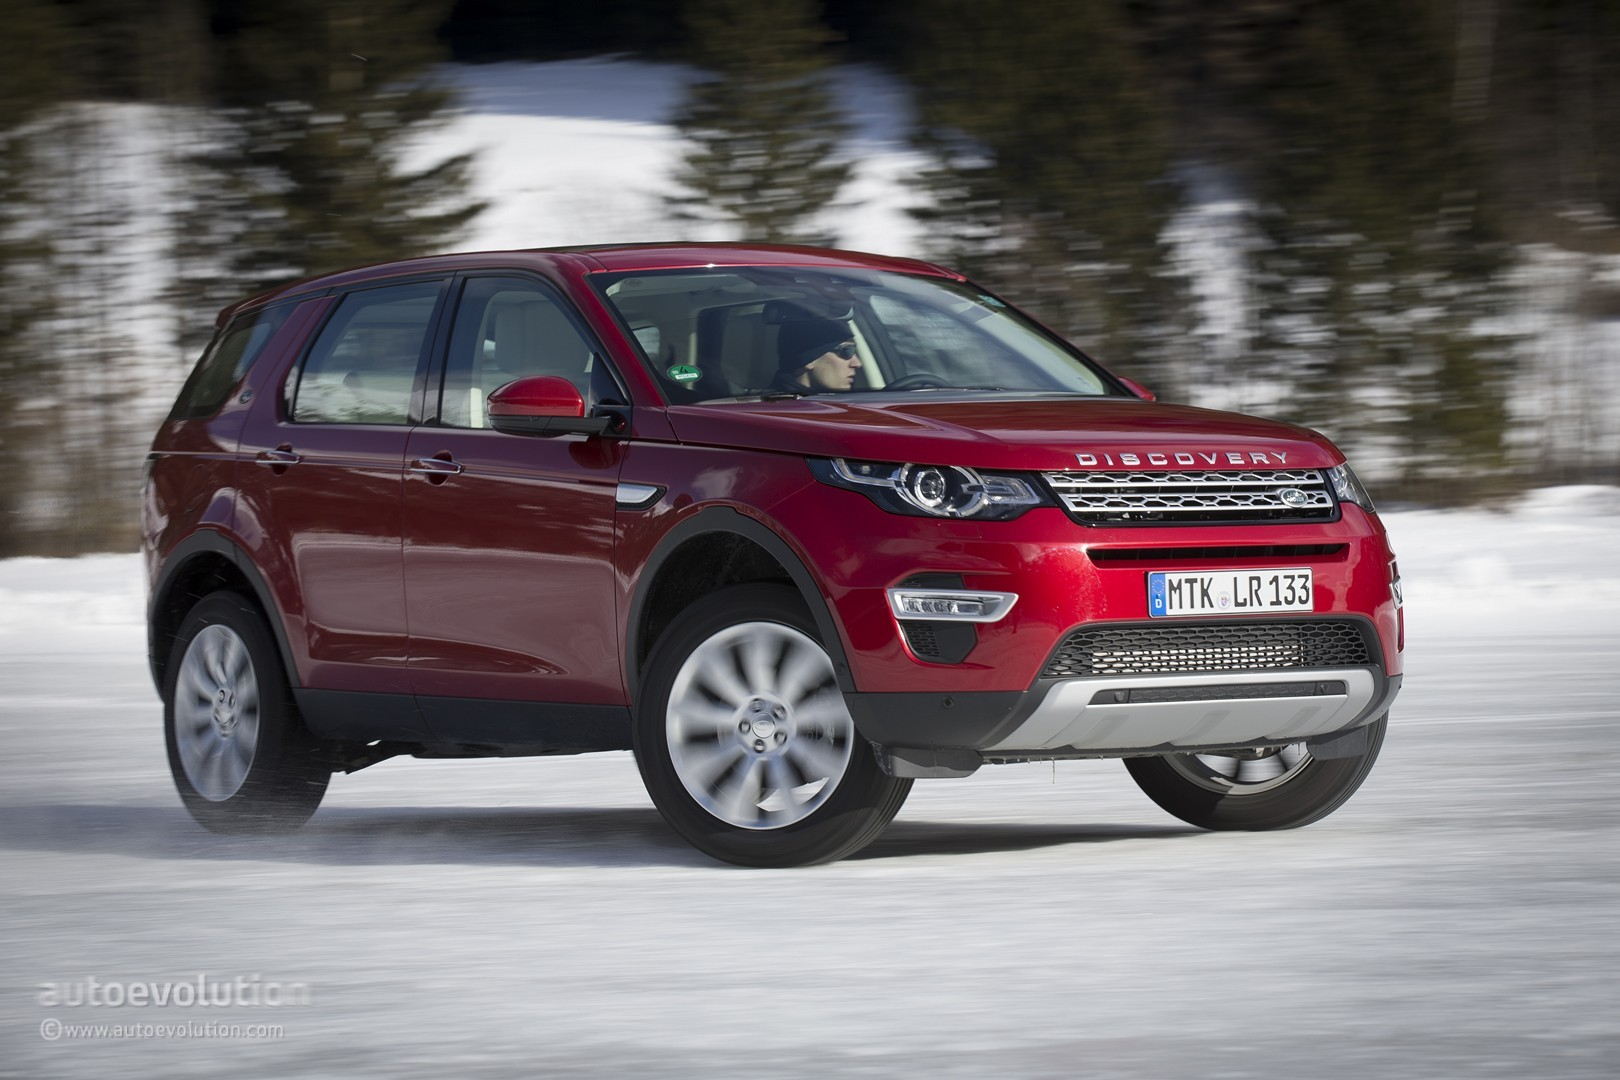 2015 Land Rover Discovery Sport Review - autoevolution